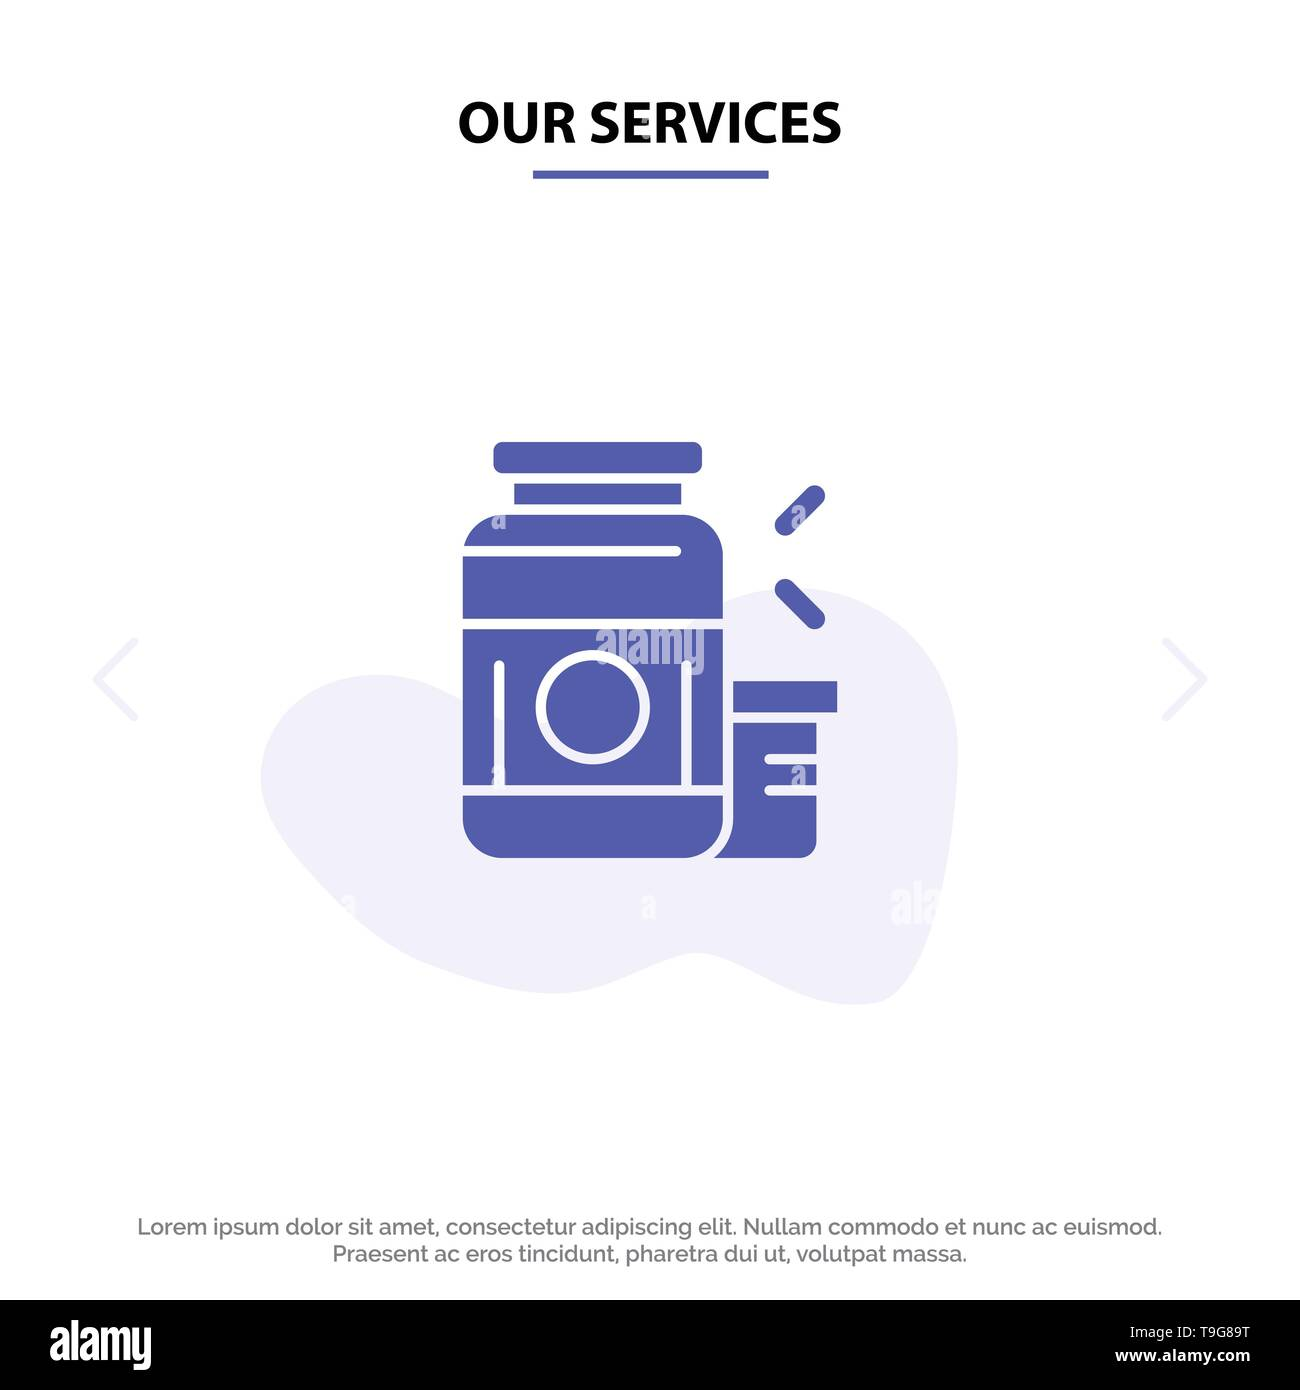 Our Services Bodybuilding, Gainer, Protein, Sports, Supplement Solid Glyph Icon Web card Template - Stock Image